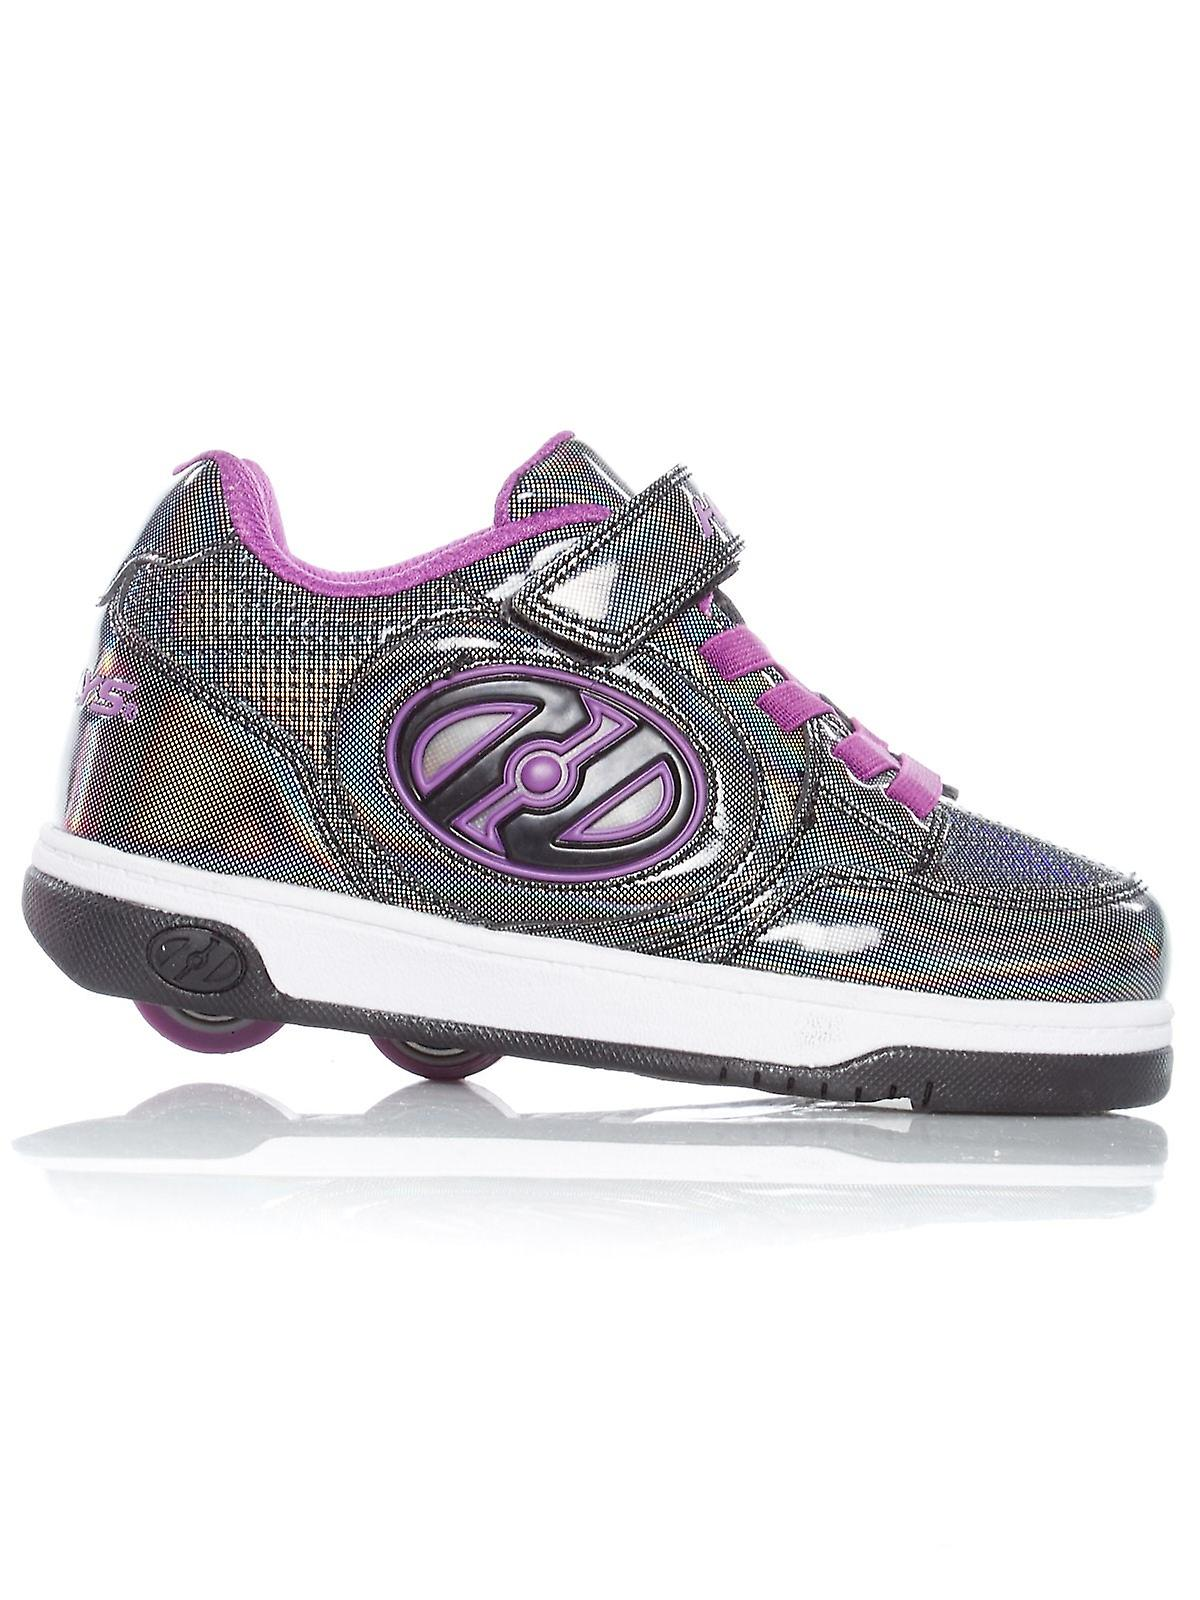 promo code f1bf4 30fed Heelys Black Sparkle-Purple Plus X2 Girls Two Wheel Shoe